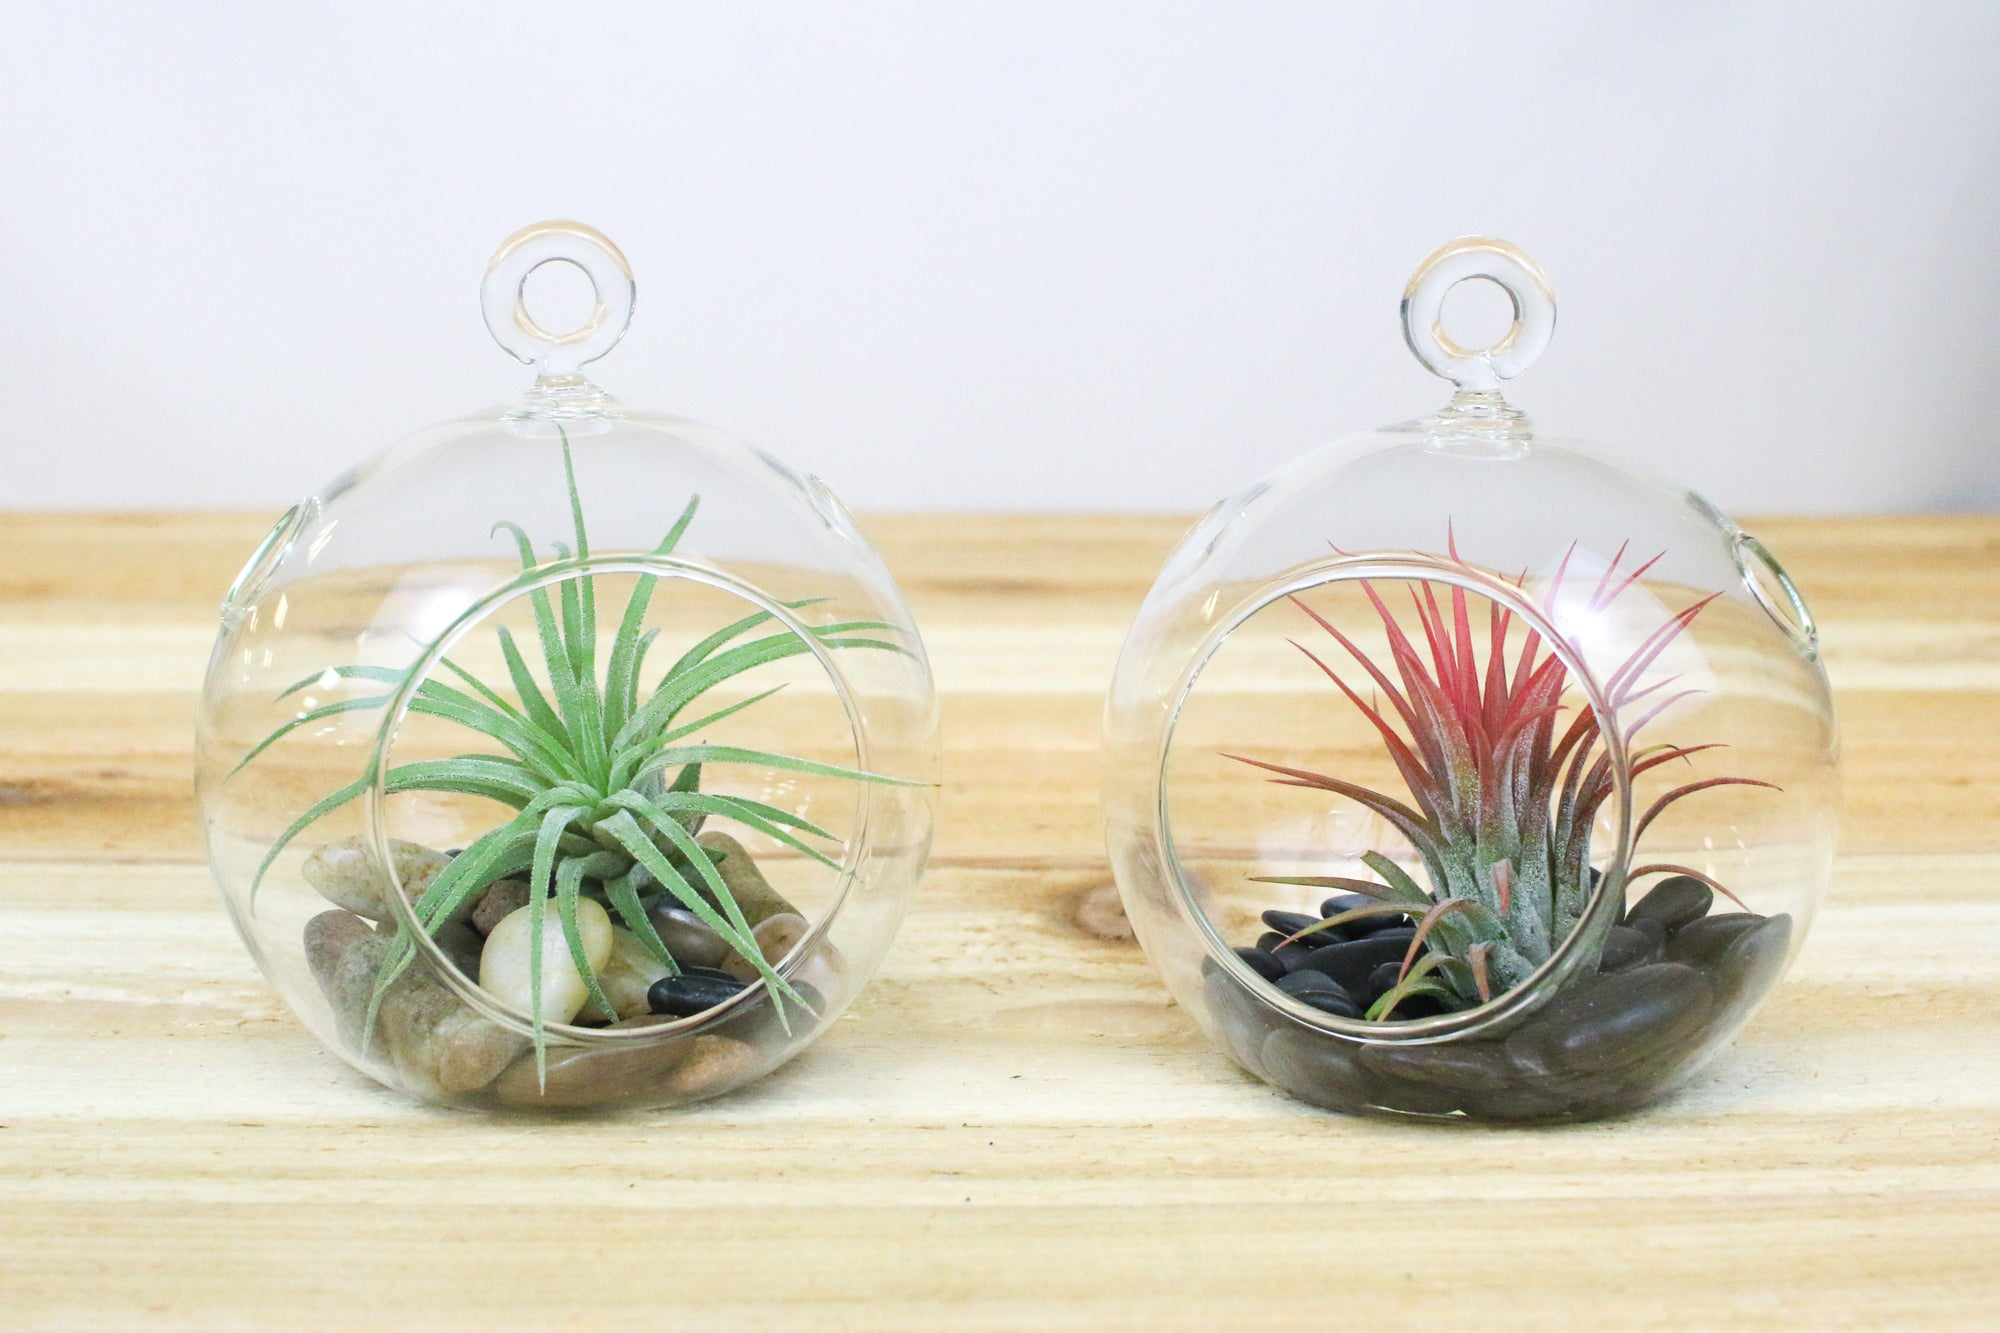 Hanging Glass Air Plant Terrarium with Flat Bottom - Includes Black Stones & Air Plant from AirPlantShop.com